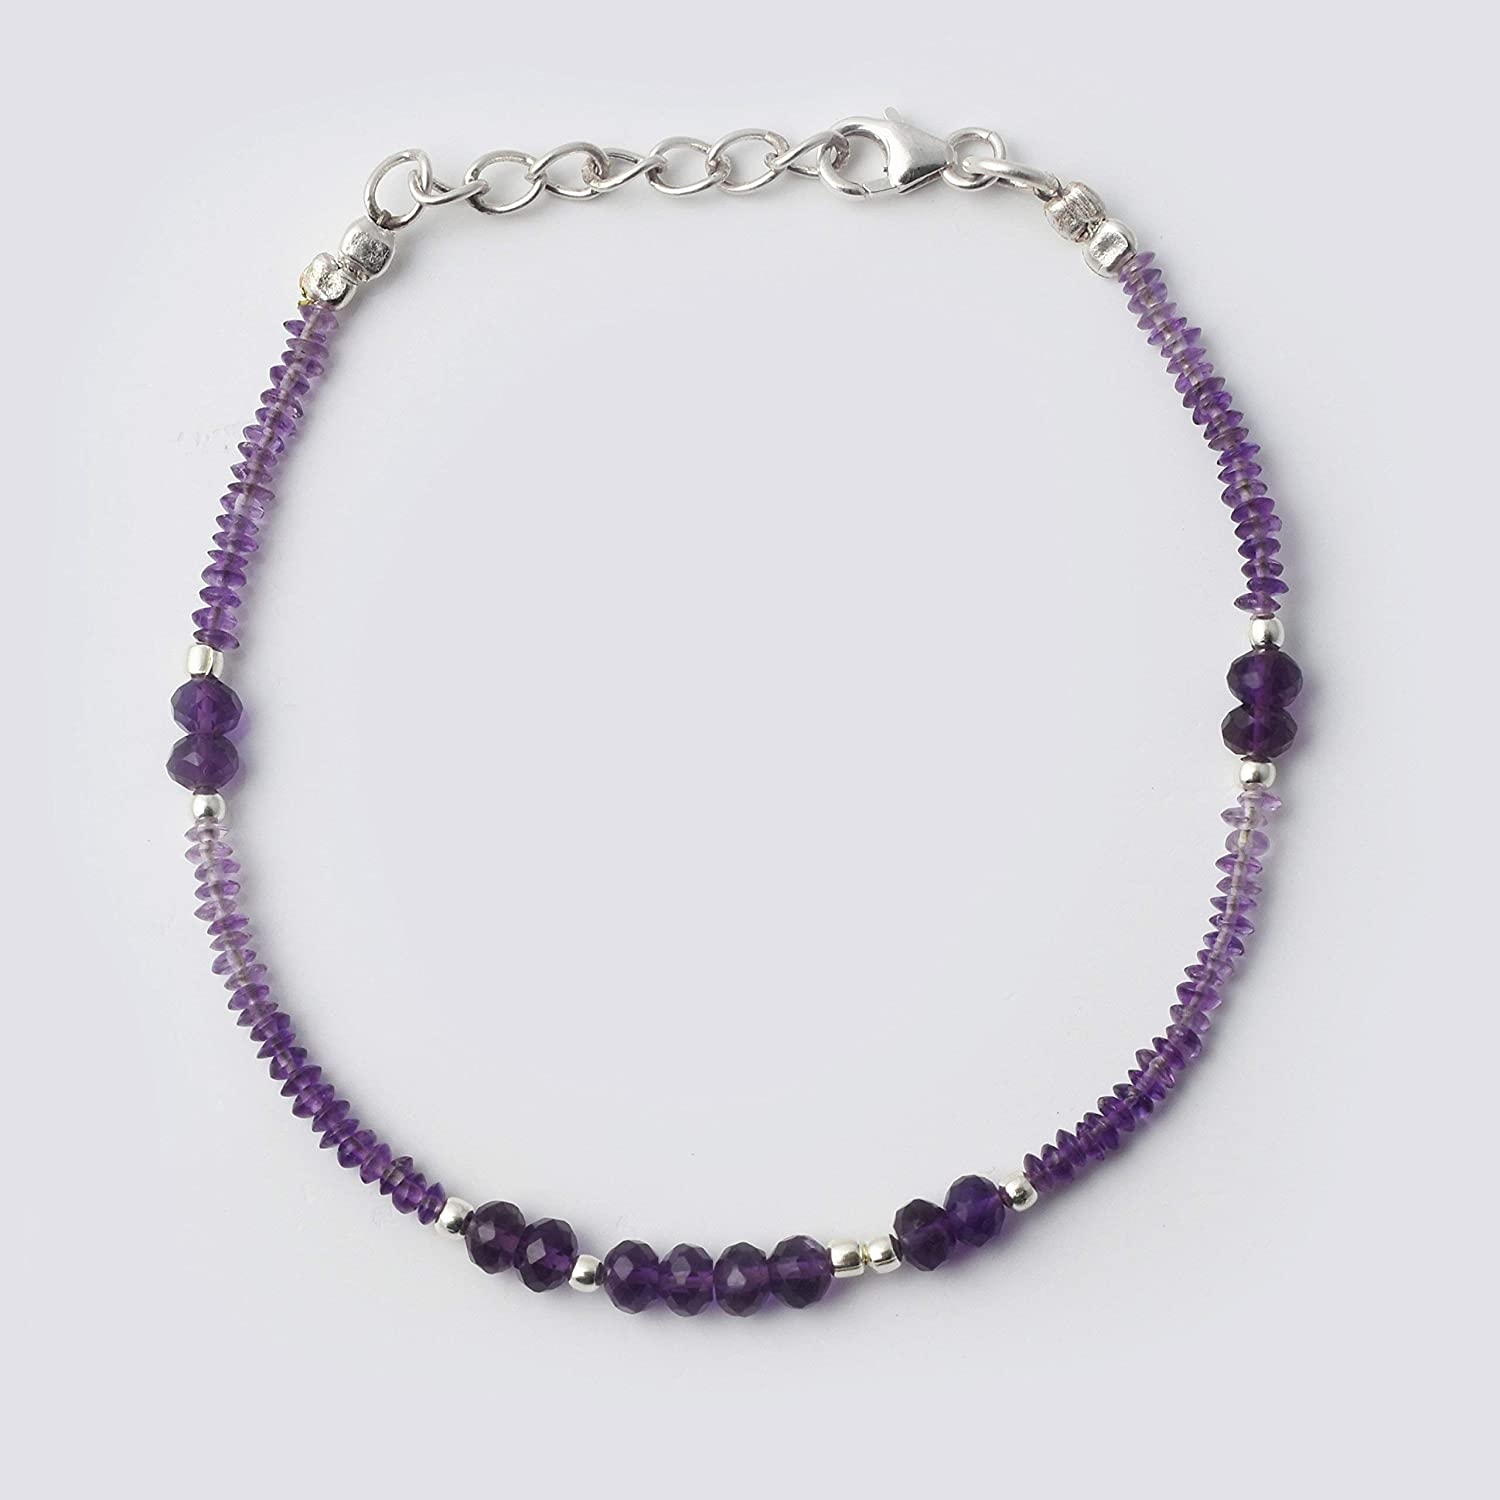 Natural Amethyst Saucer Rondelle Beads Bracelet with Sterling Silver Findings 6.50 Gemstone Jewelry